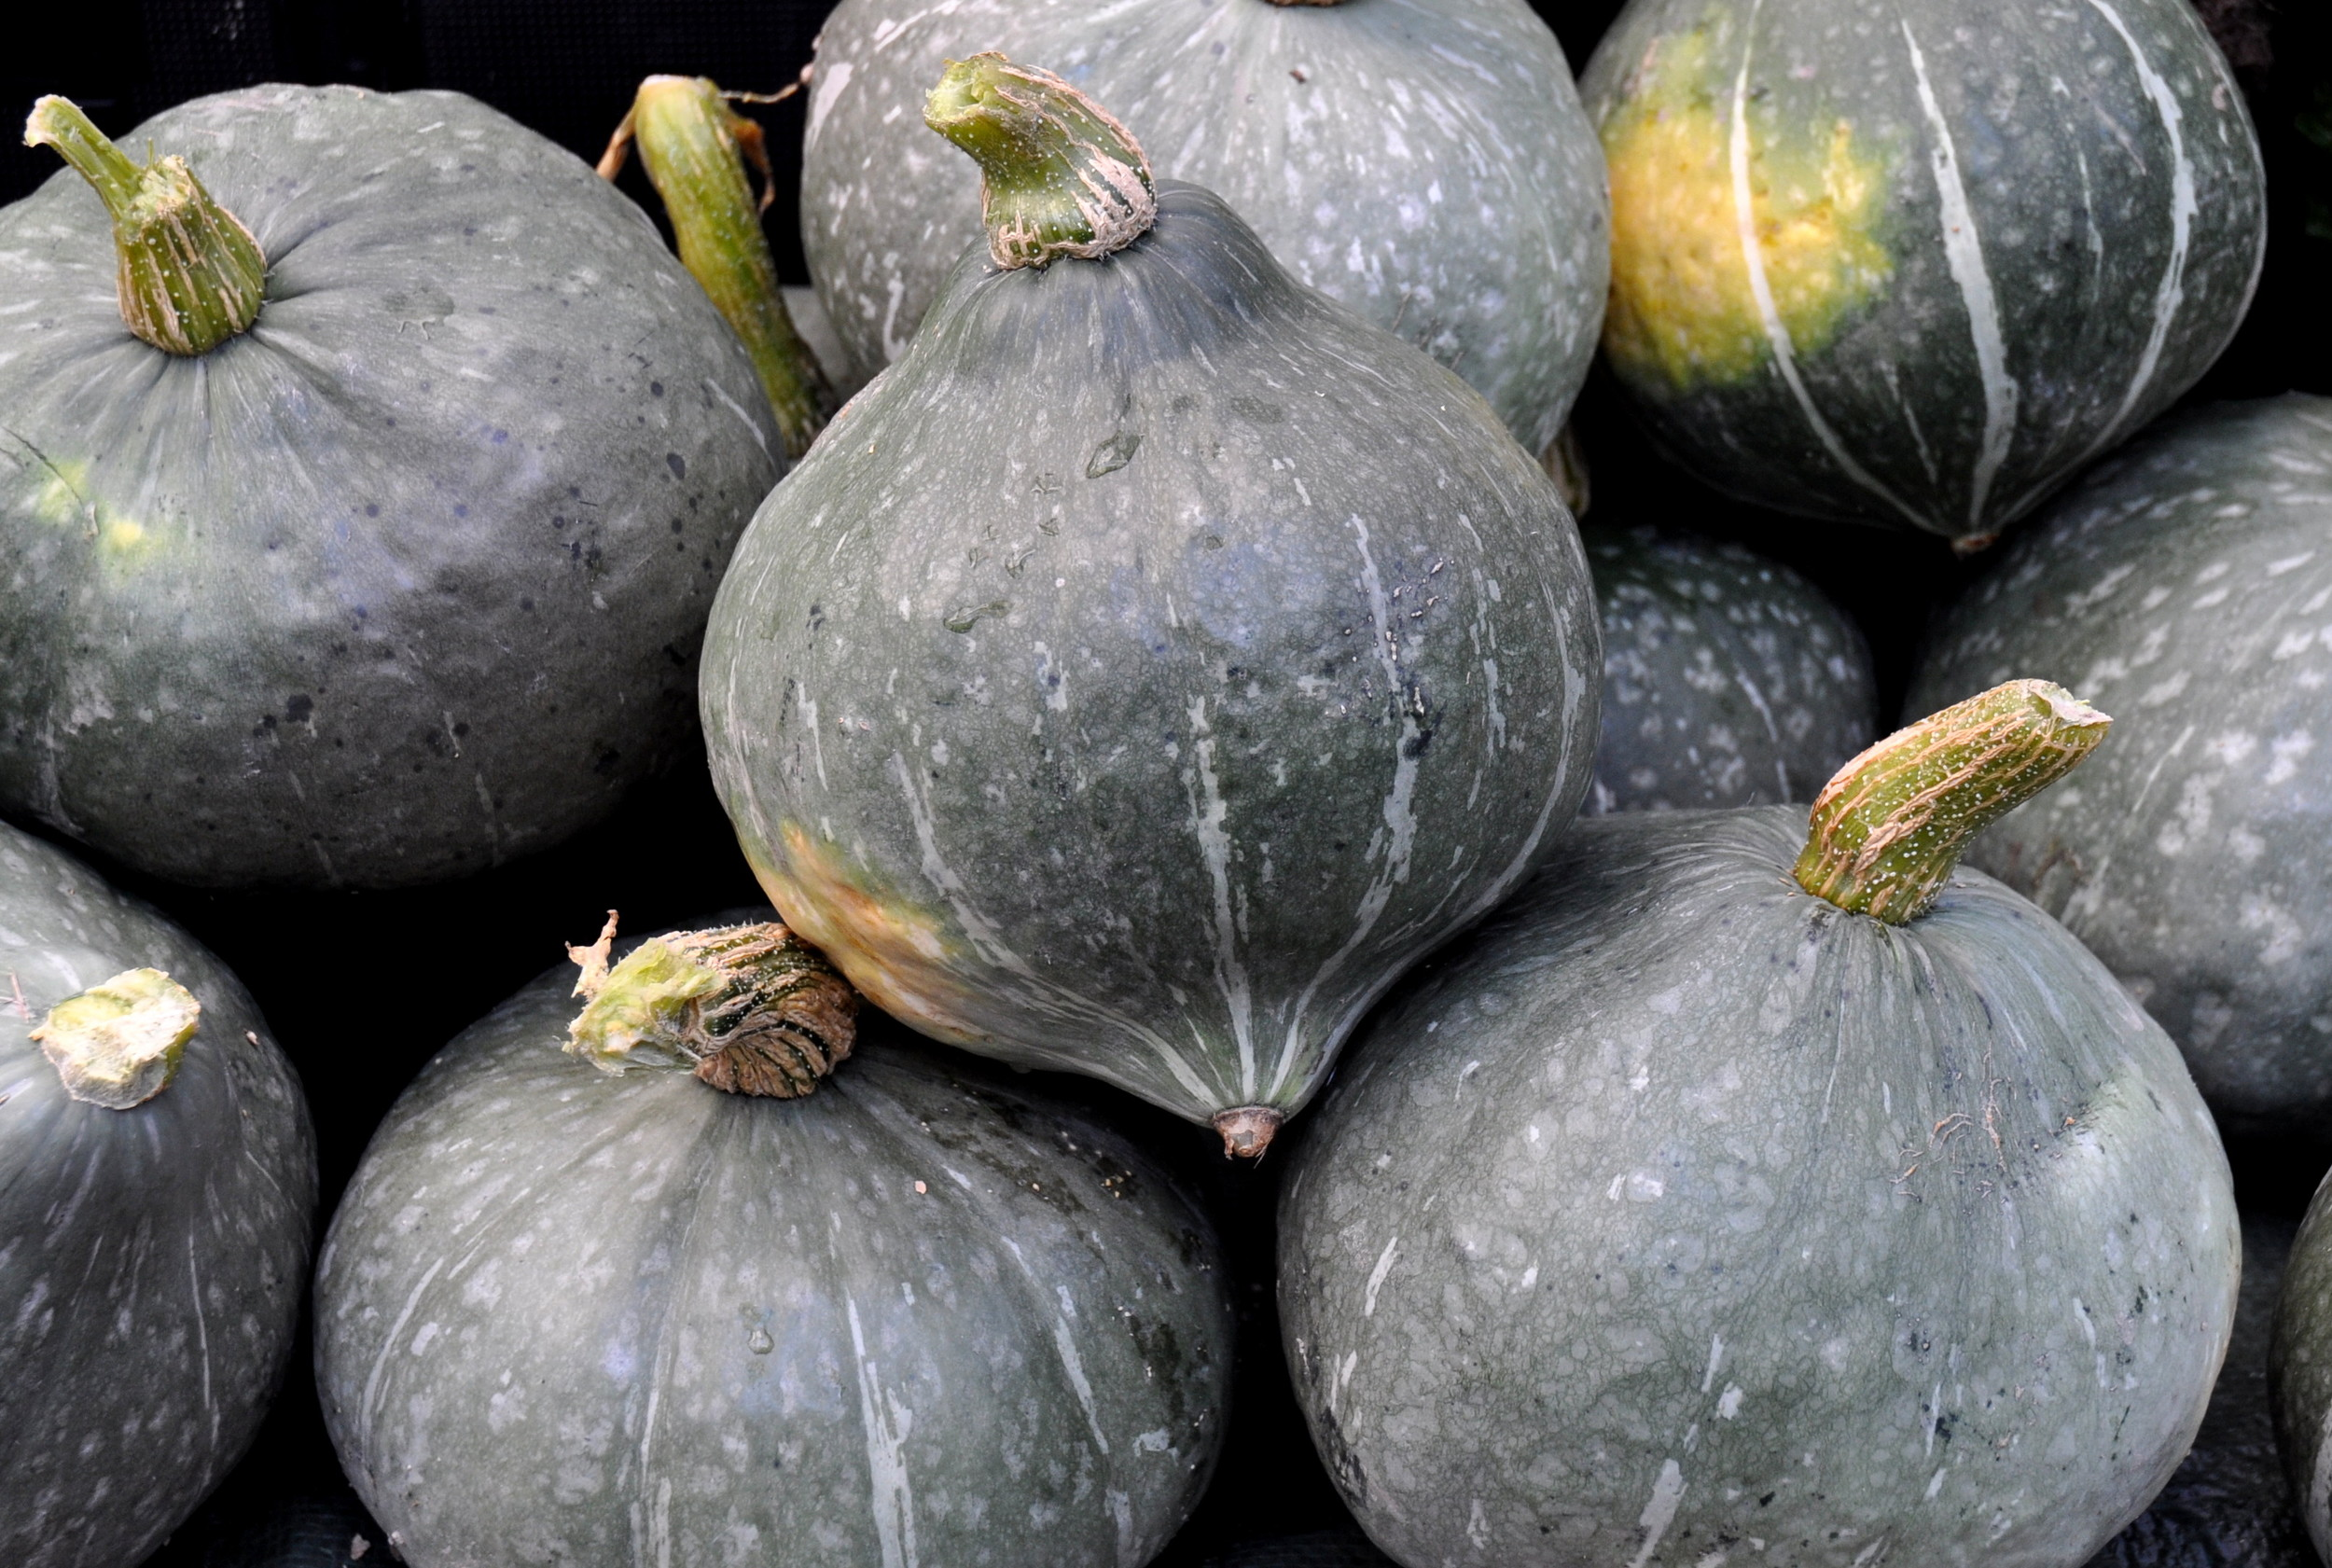 Kabocha winter squash from Gaia's Harmony Farm. Photo copyright 2013 by Zachary D. Lyons.